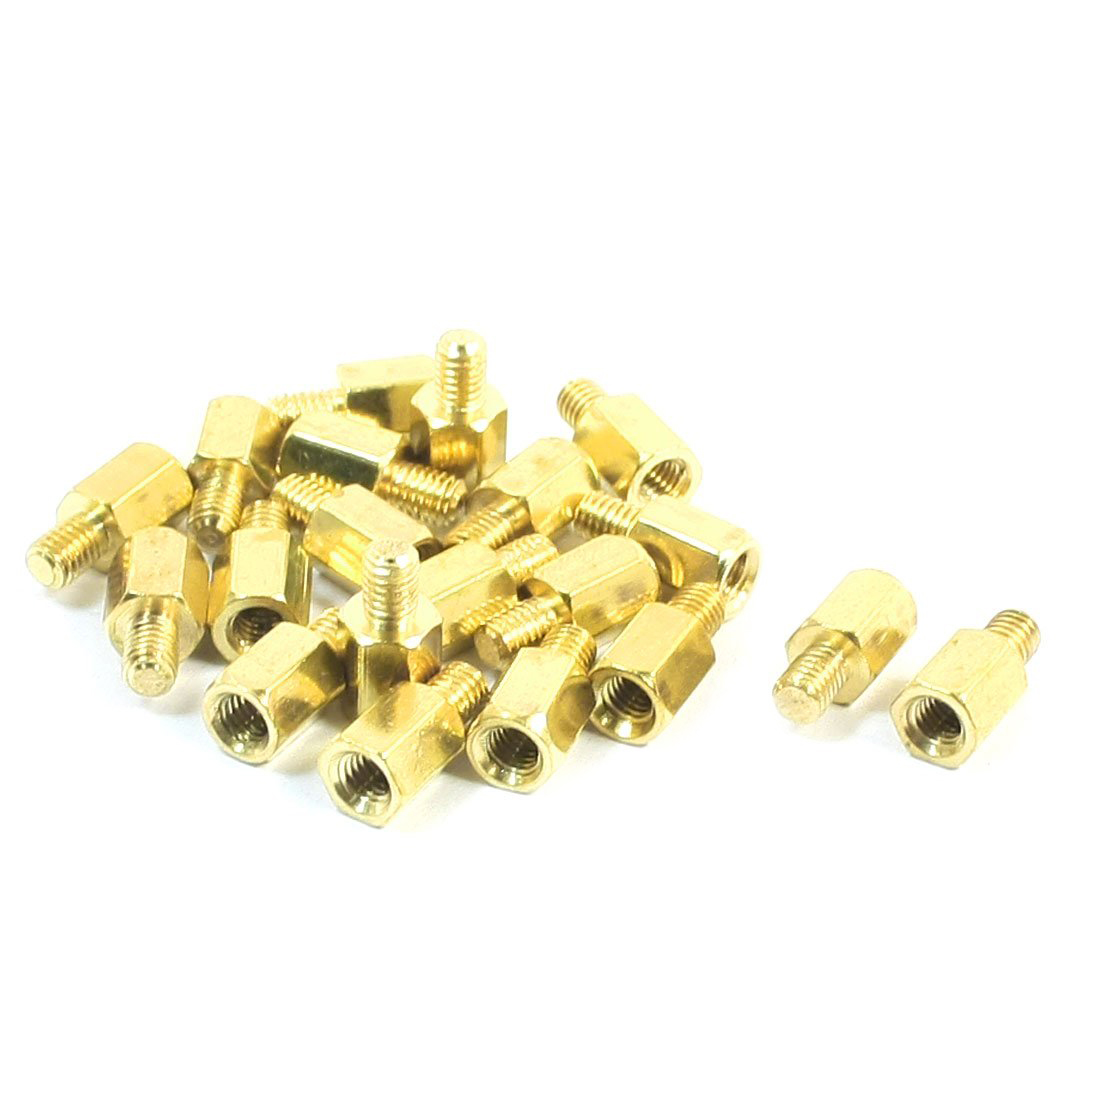 New Gift Arrive promotion 20 Pcs PC PCB Motherboard Brass Standoff Hexagonal Spacer M3 6+4mm<br><br>Aliexpress